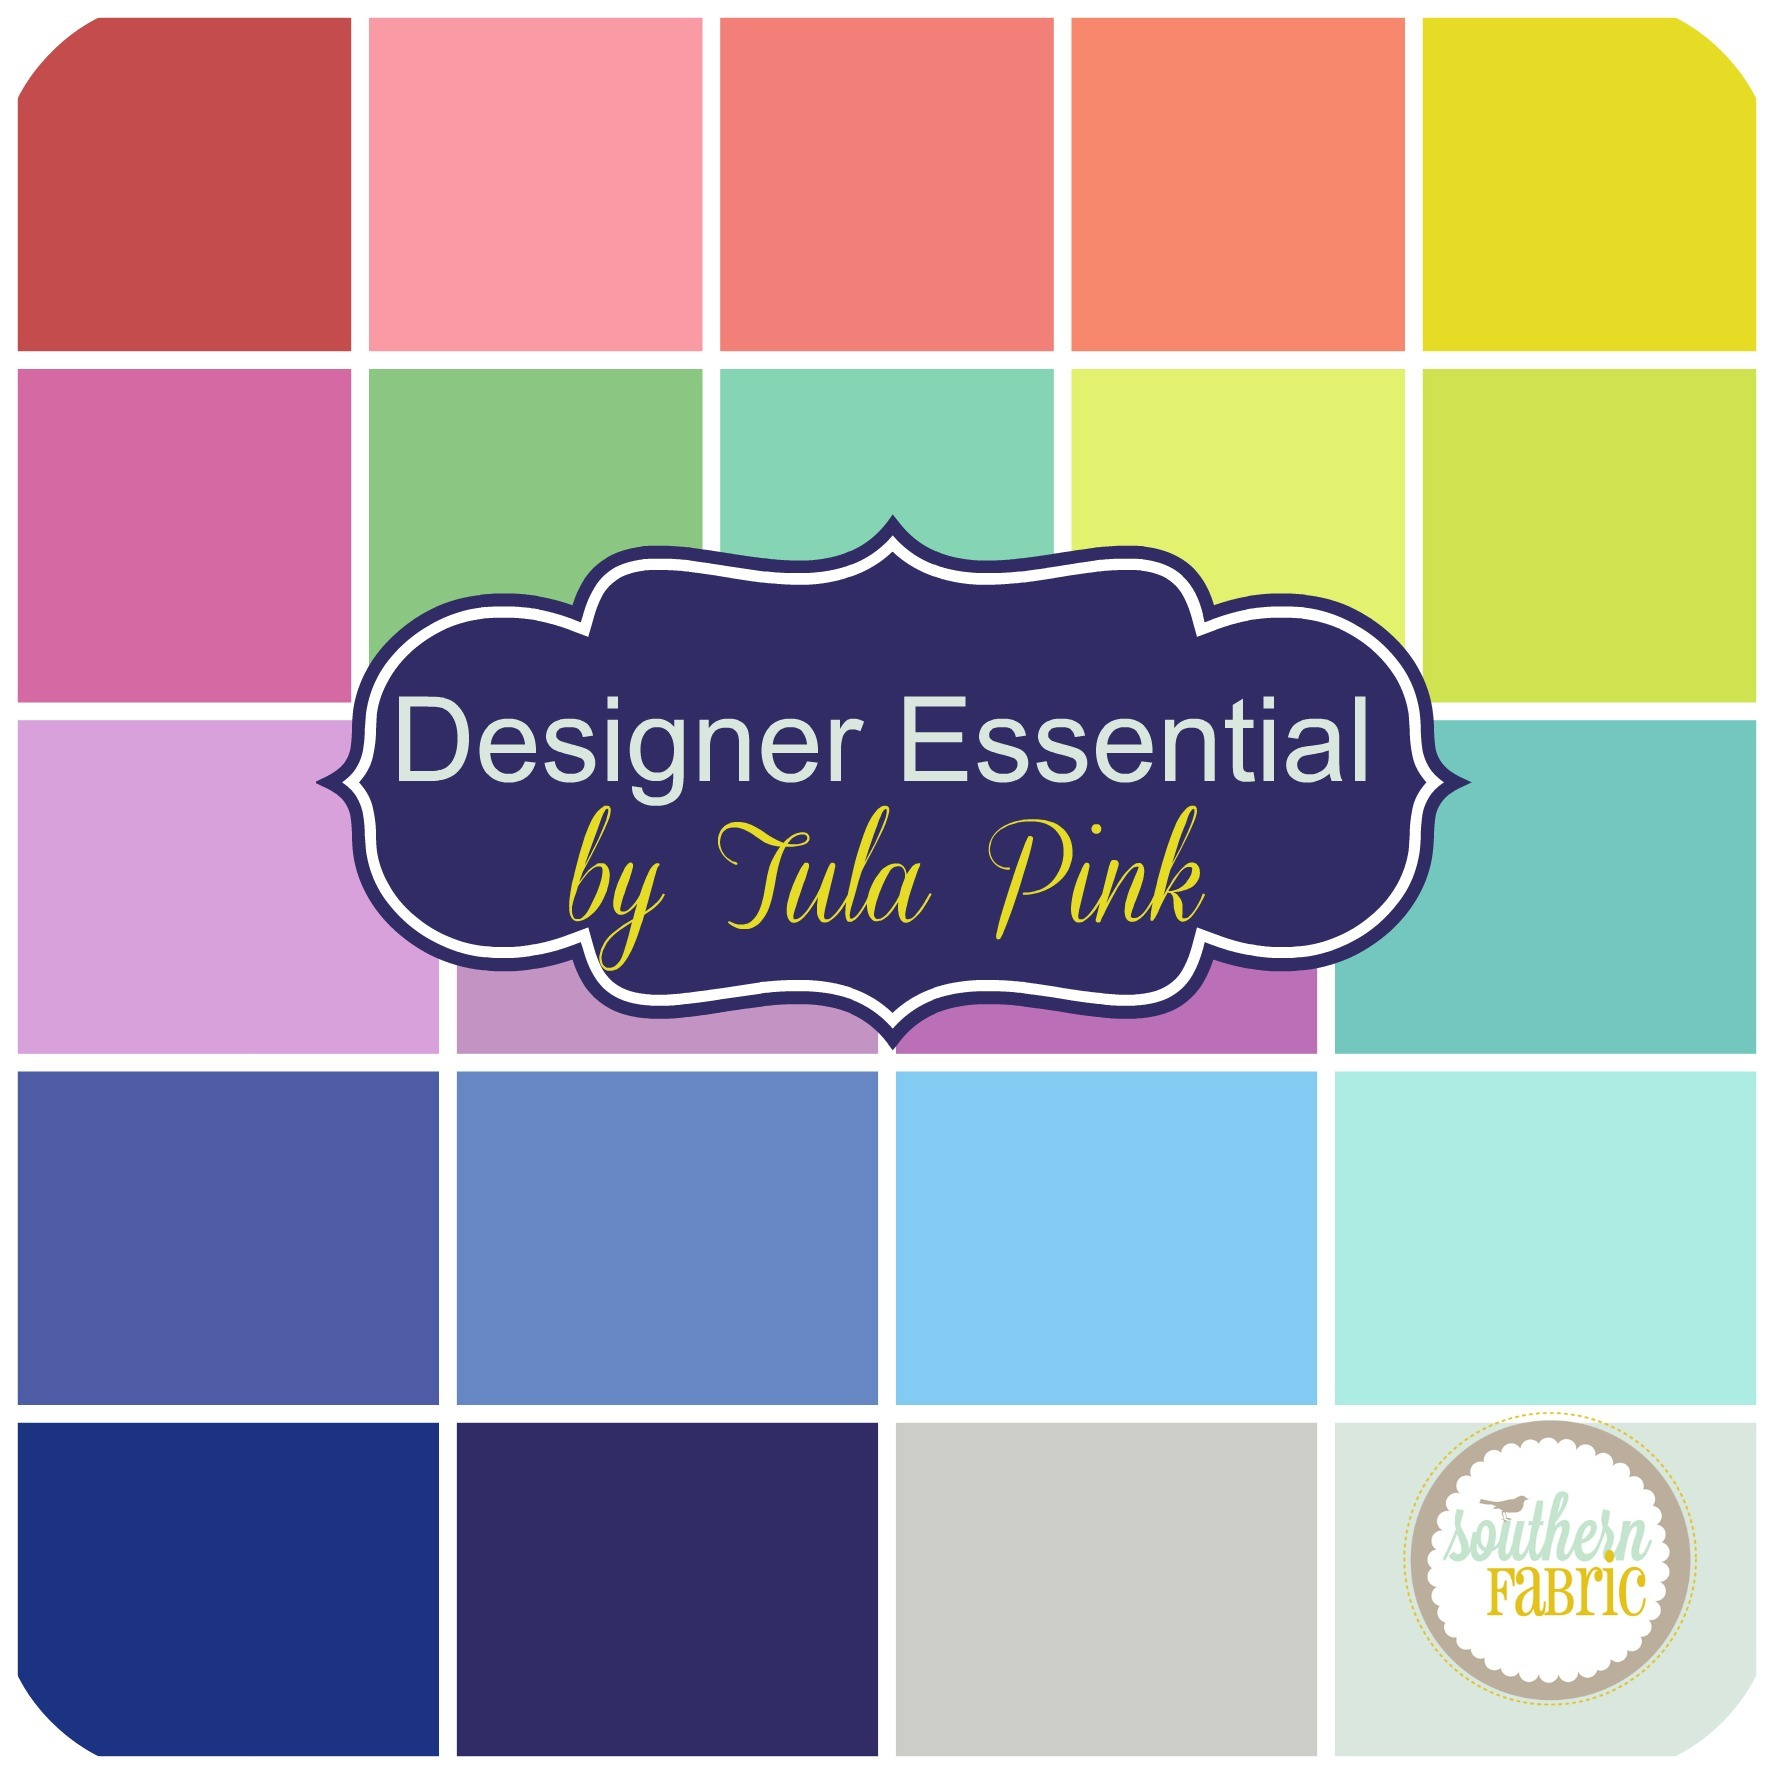 Designer Essentials by Tula Pink